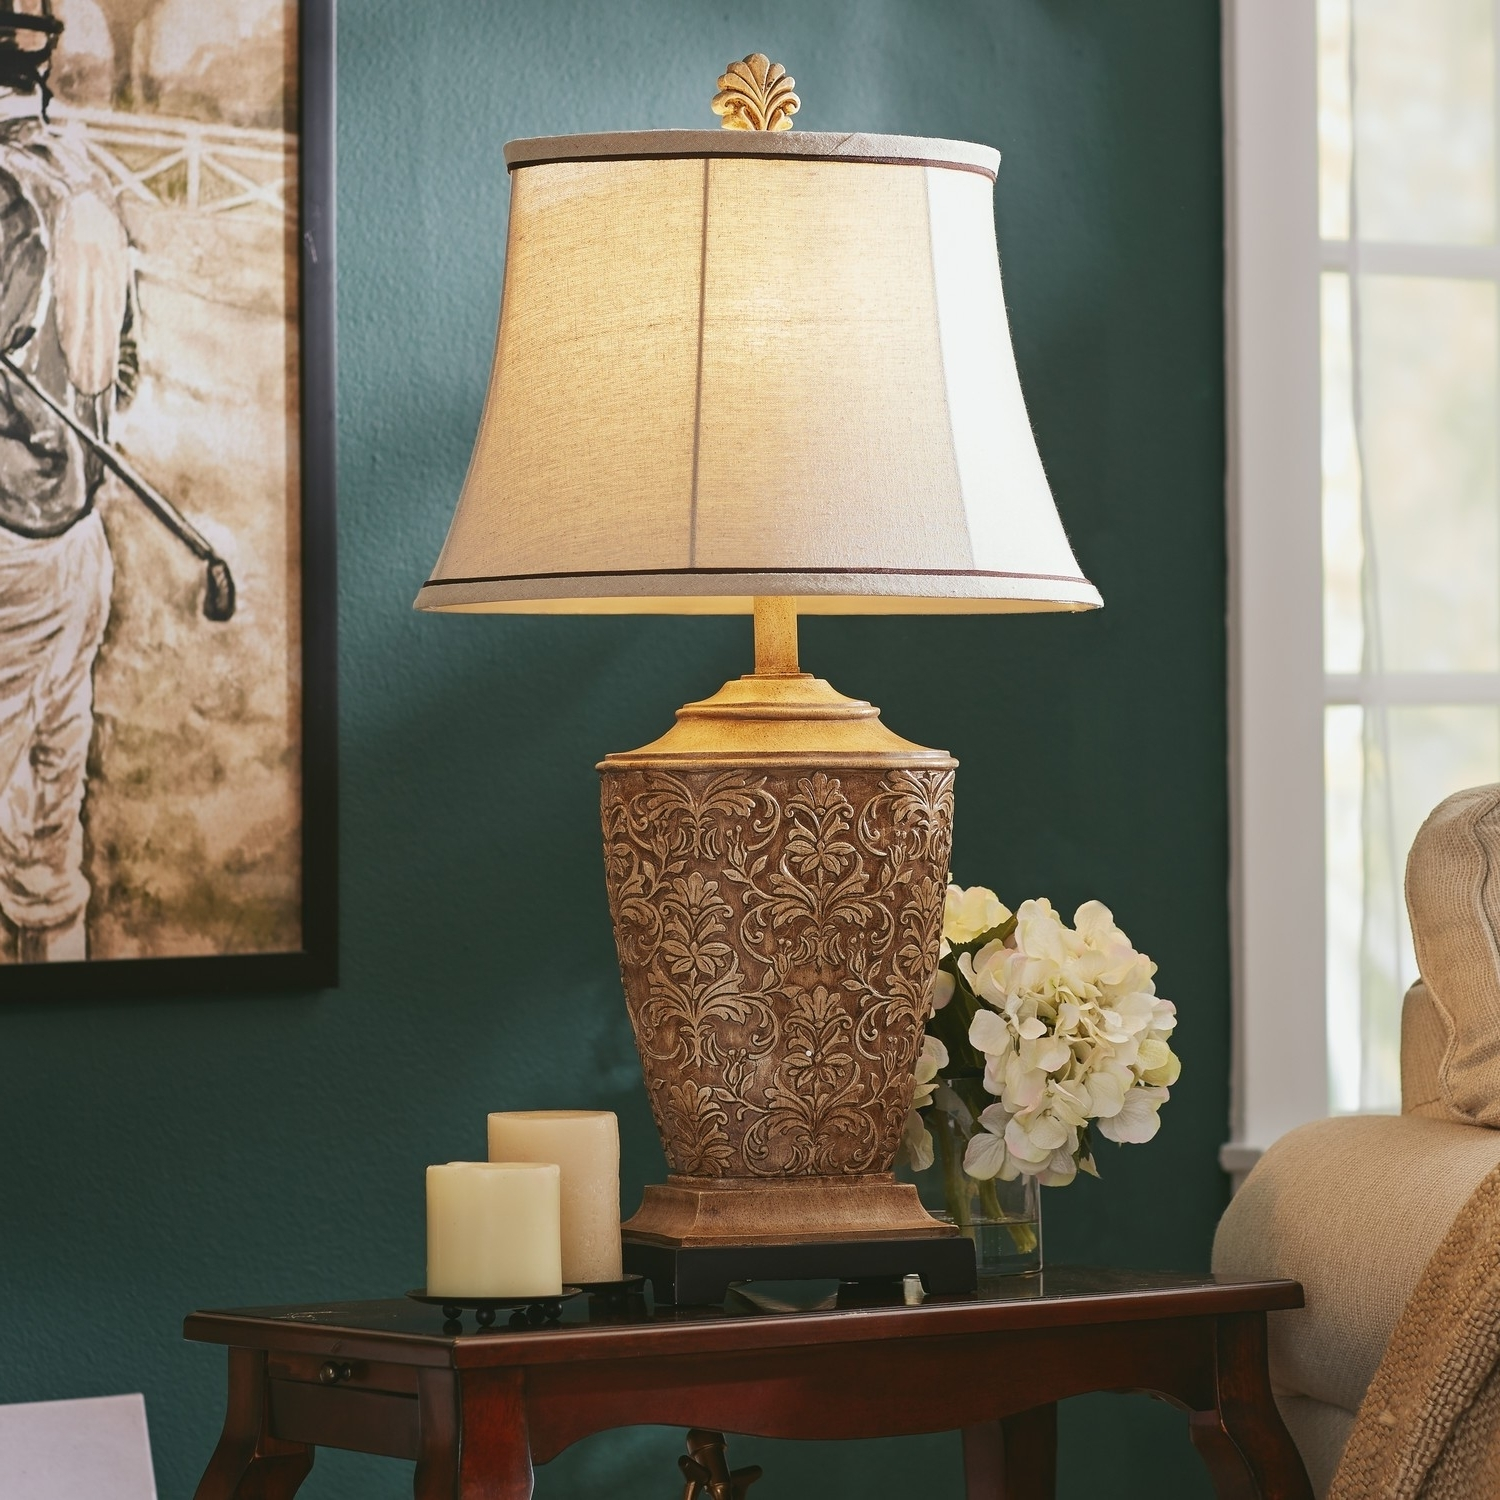 Silver Table Lamps Living Room Table Lamps For Living Room With Most Recent Rustic Living Room Table Lamps (View 17 of 20)